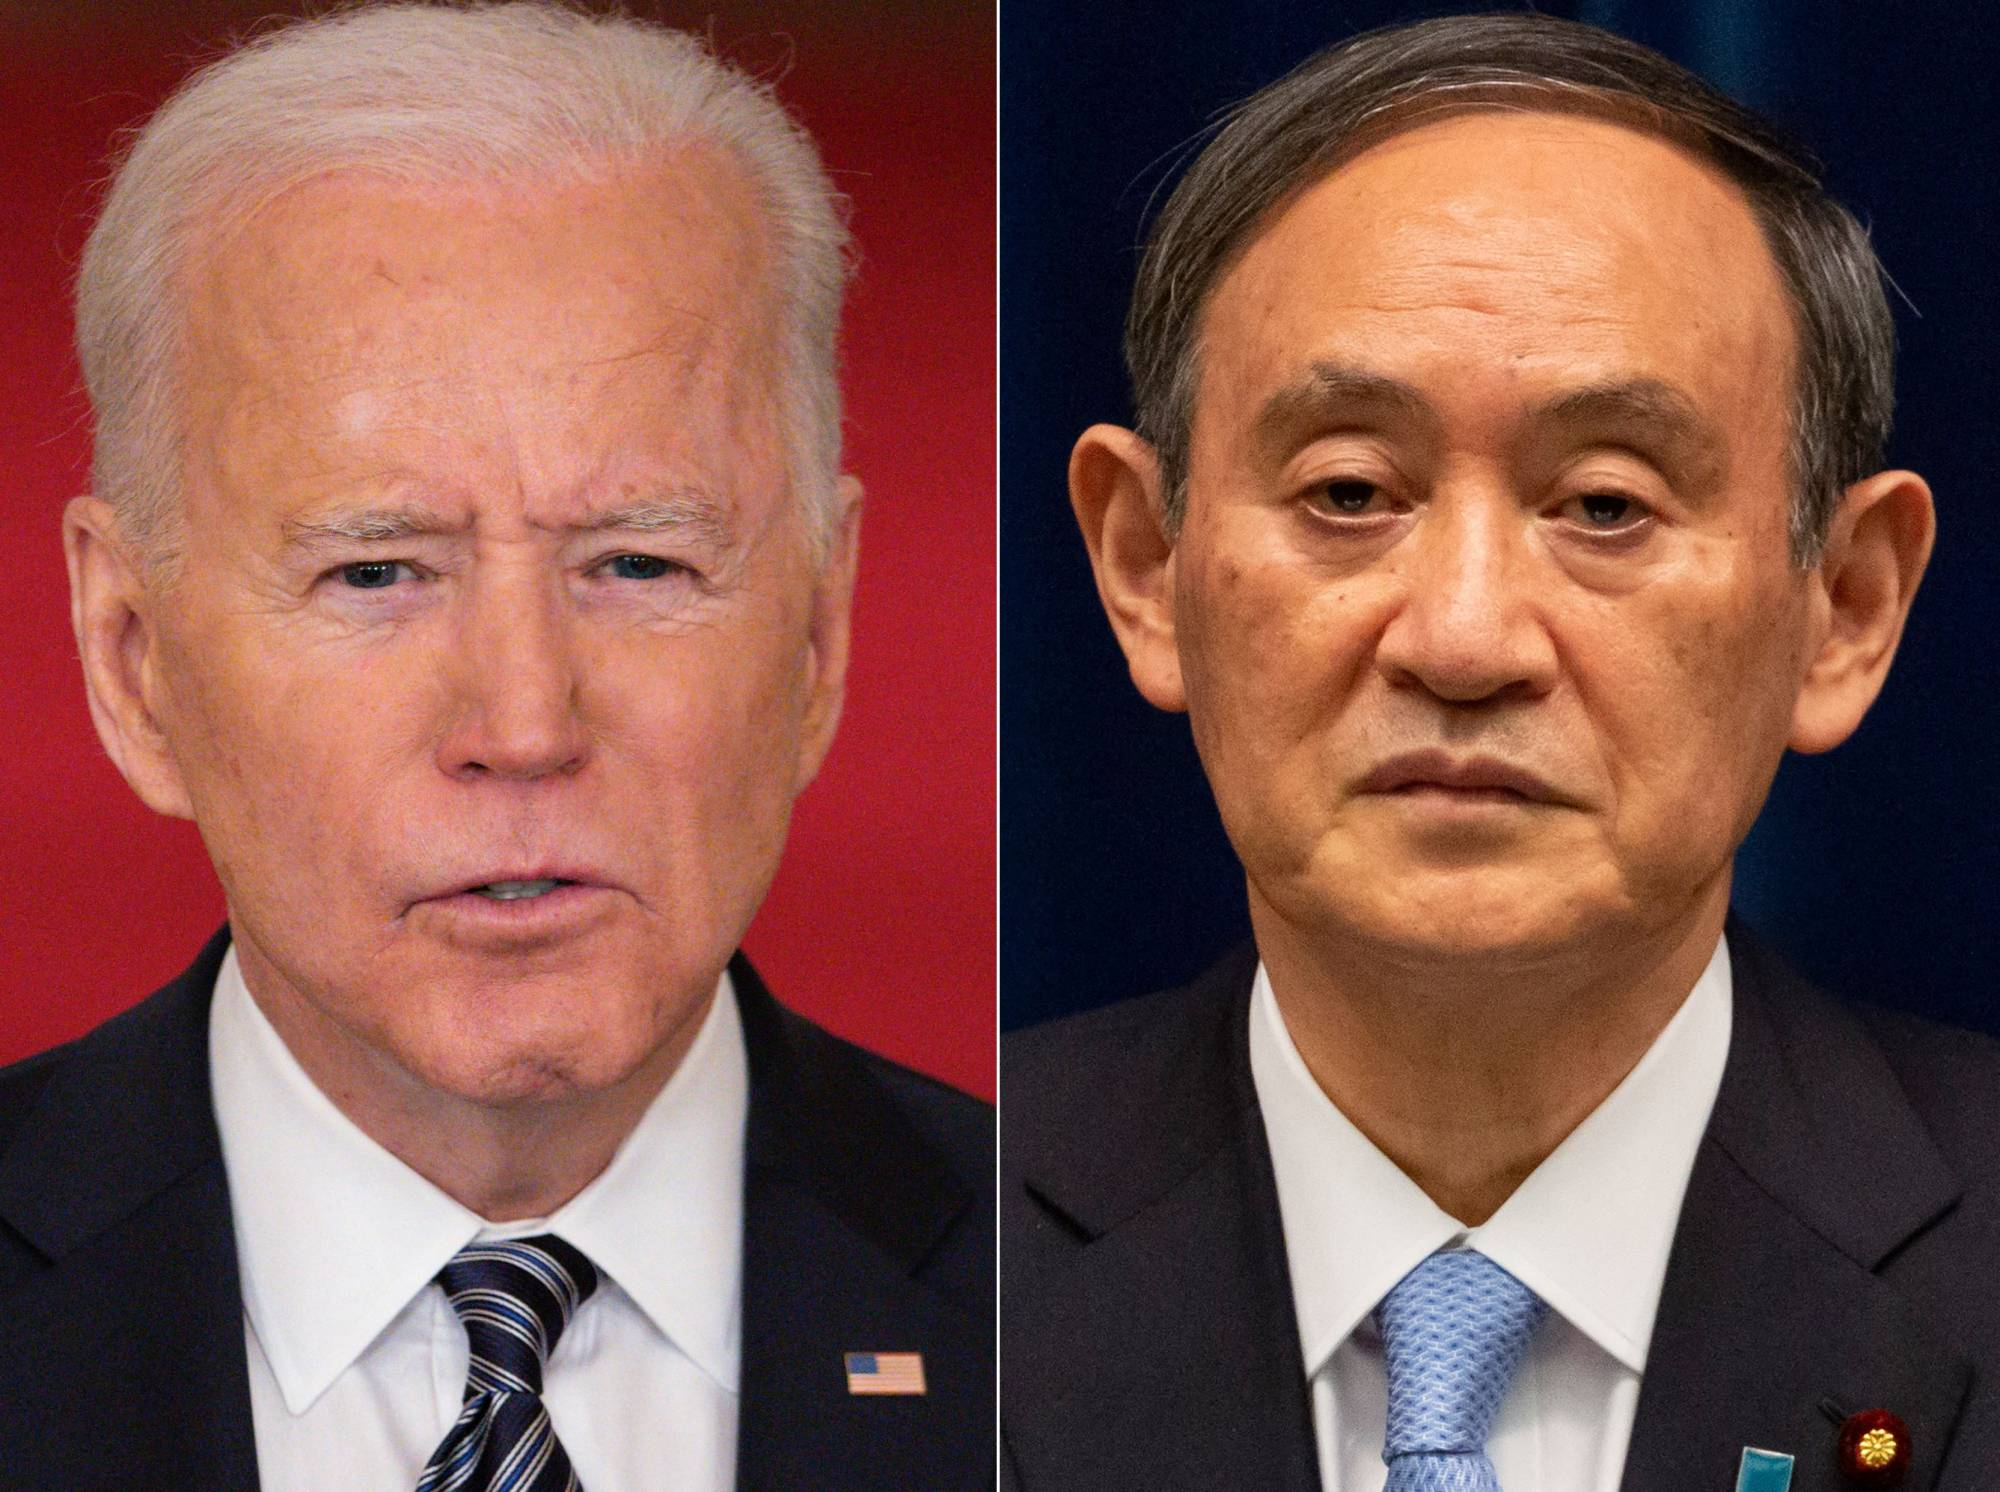 U.S. President Joe Biden will host Prime Minister Yoshihide Suga in Washington on Friday. Suga will be the first foreign leader received at the White House by Biden, who so far has held only virtual meetings with top government officials from other countries. | AFP-JIJI